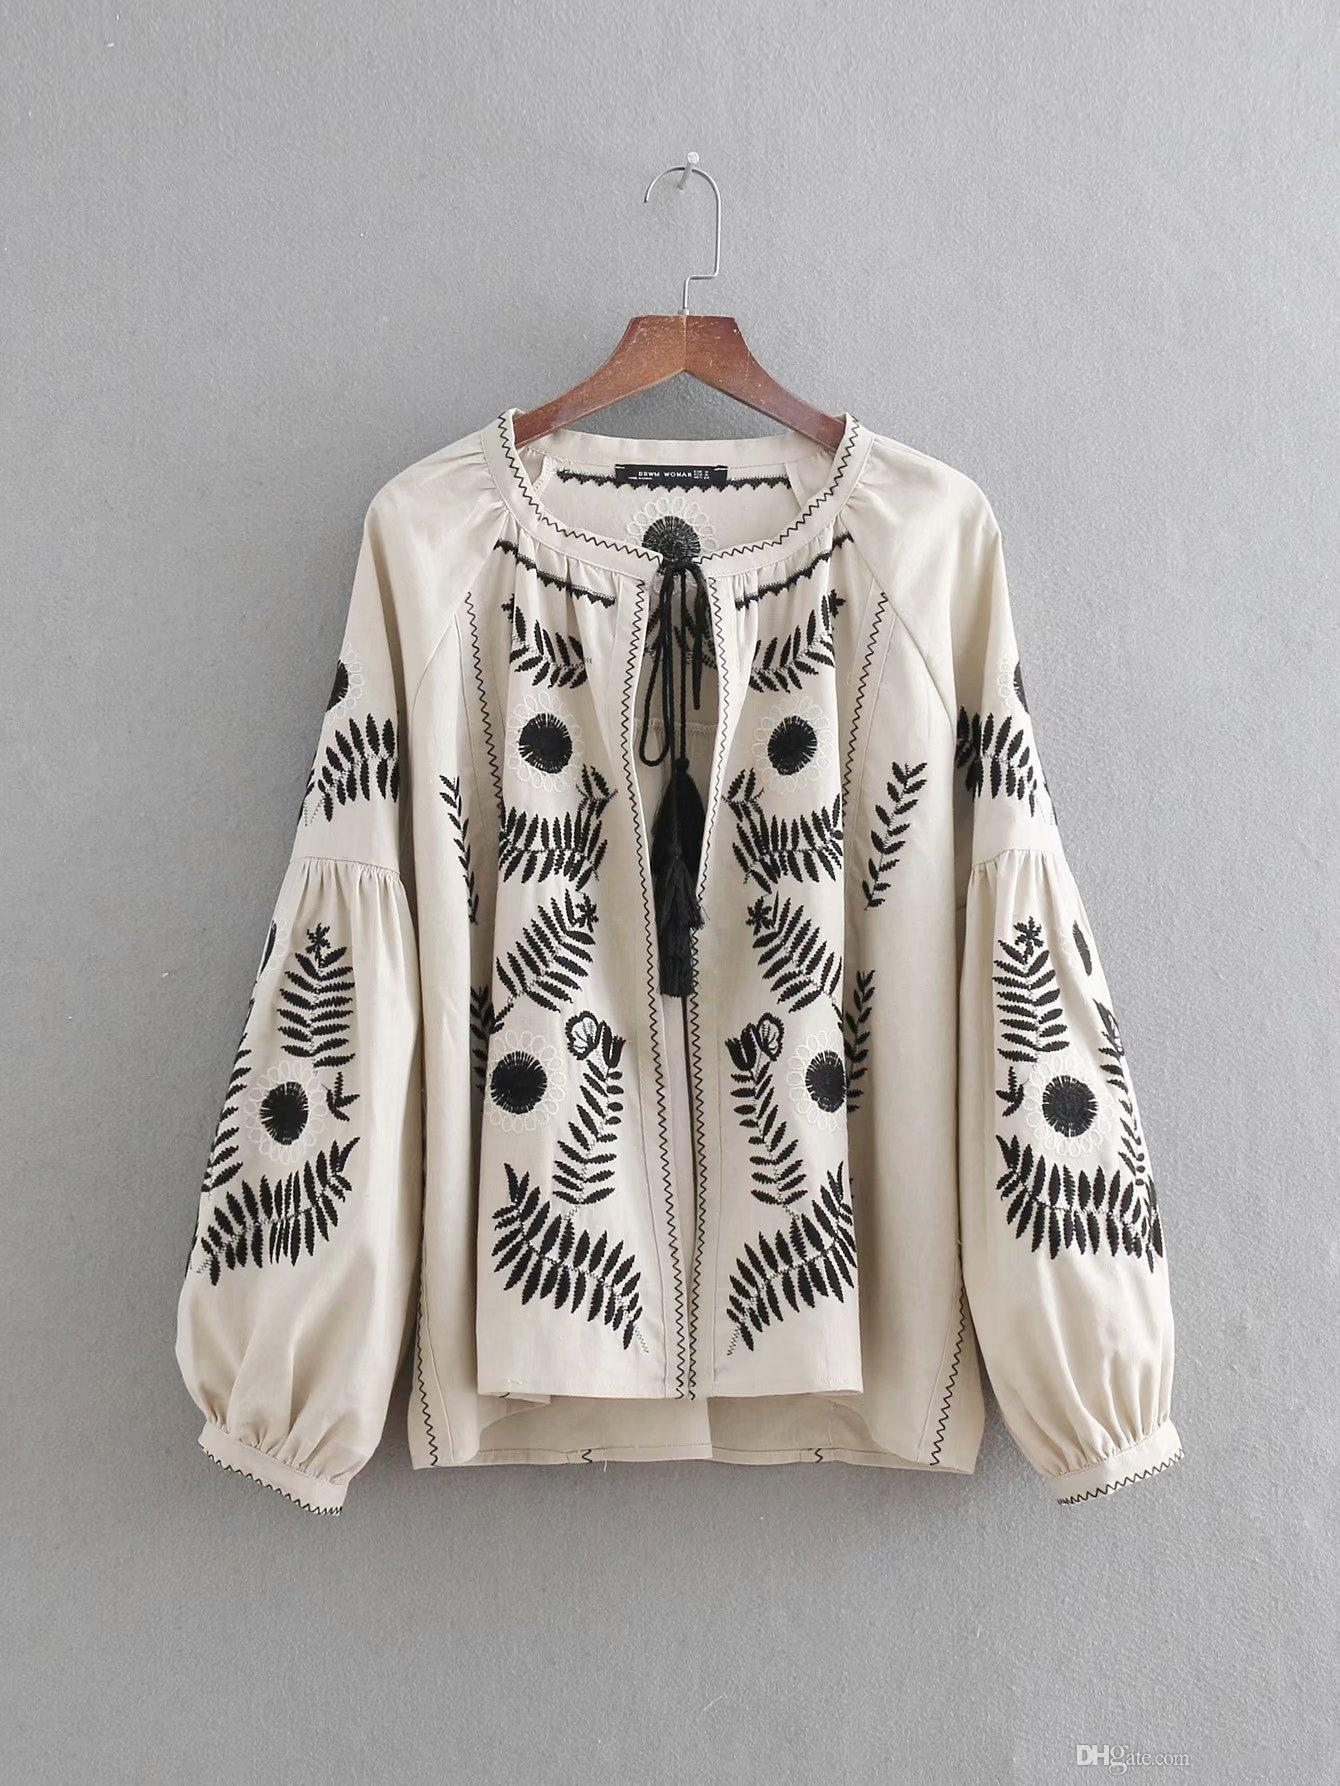 EURO STYLE WOMEN CLOTHES FASHION WOMEN'S ROUND COLLAR LONG SLEEVE COTTON BLOUSE LADY ELEGANT EMBROIDERY TOP BLOUSE & SHIRTS